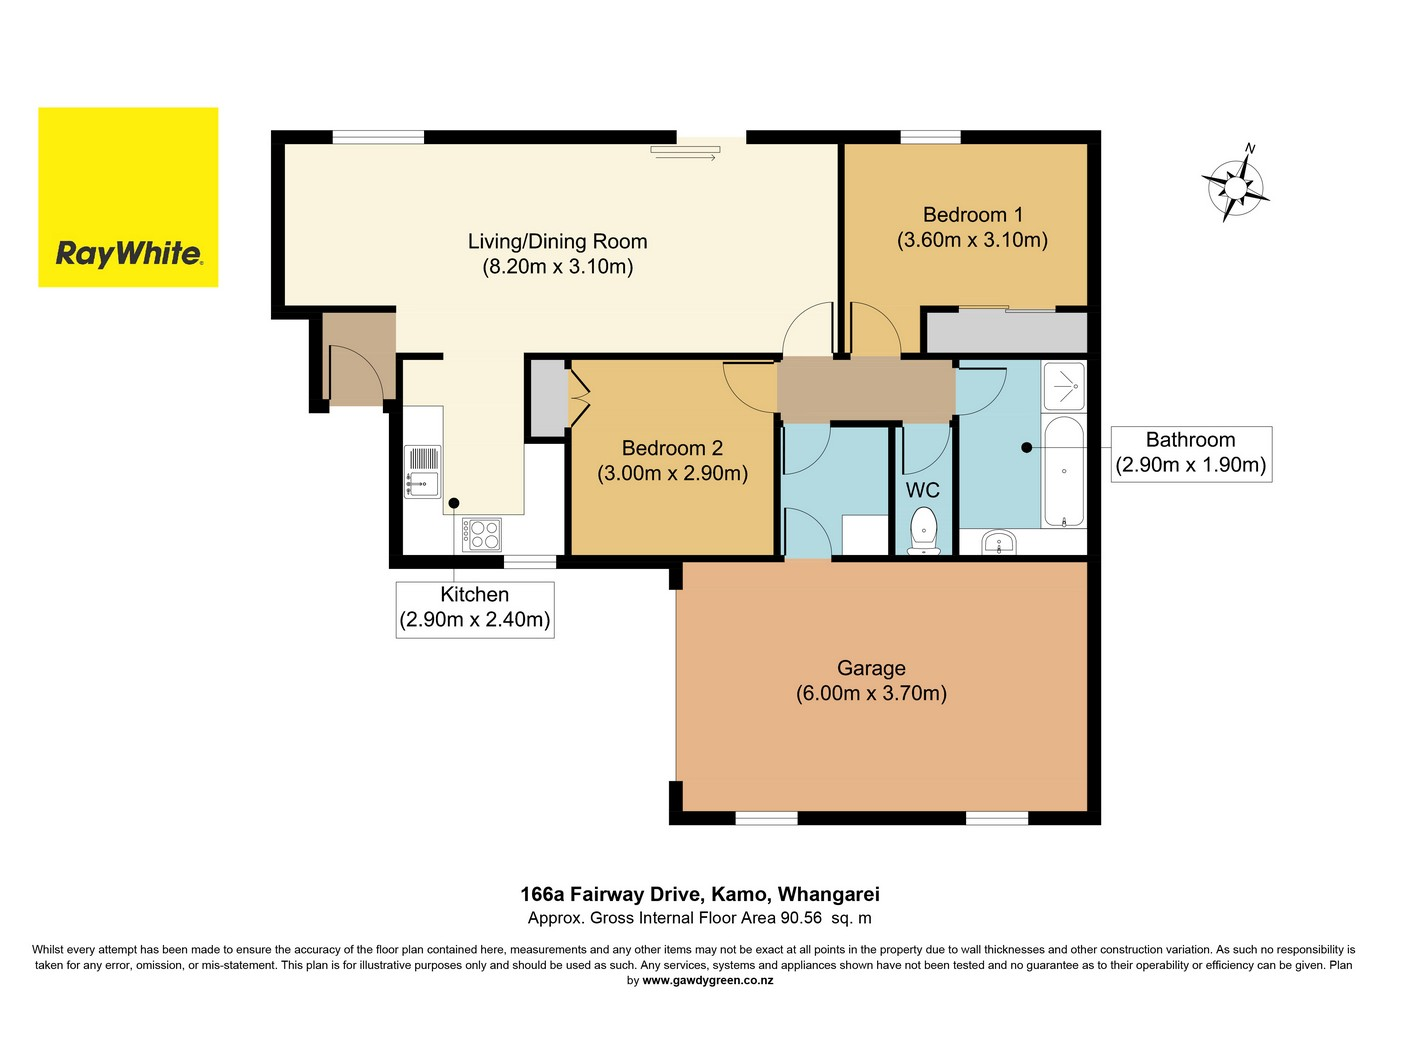 floor plans for real estate agents we can help with fantastic great value floor plans for real estate